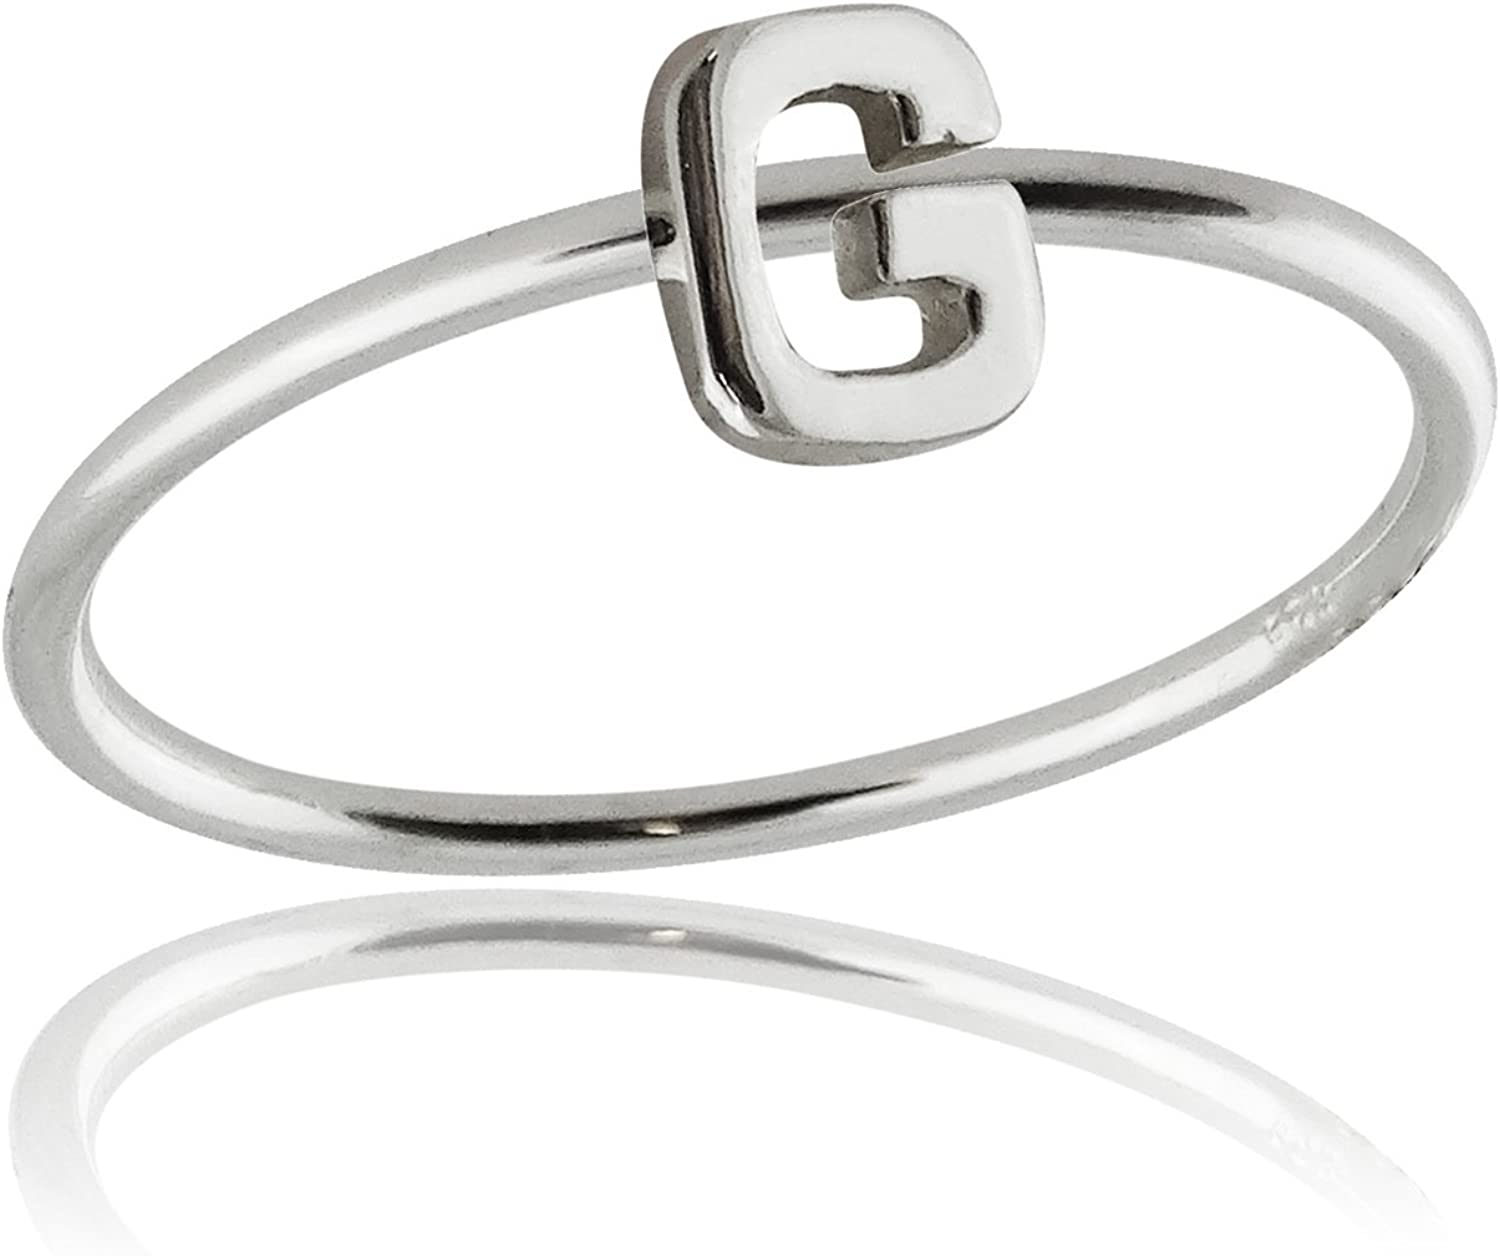 4 Authentic 925 Sterling Silver Egyptian Ankh Cross Ring Available in Sizes 4-10